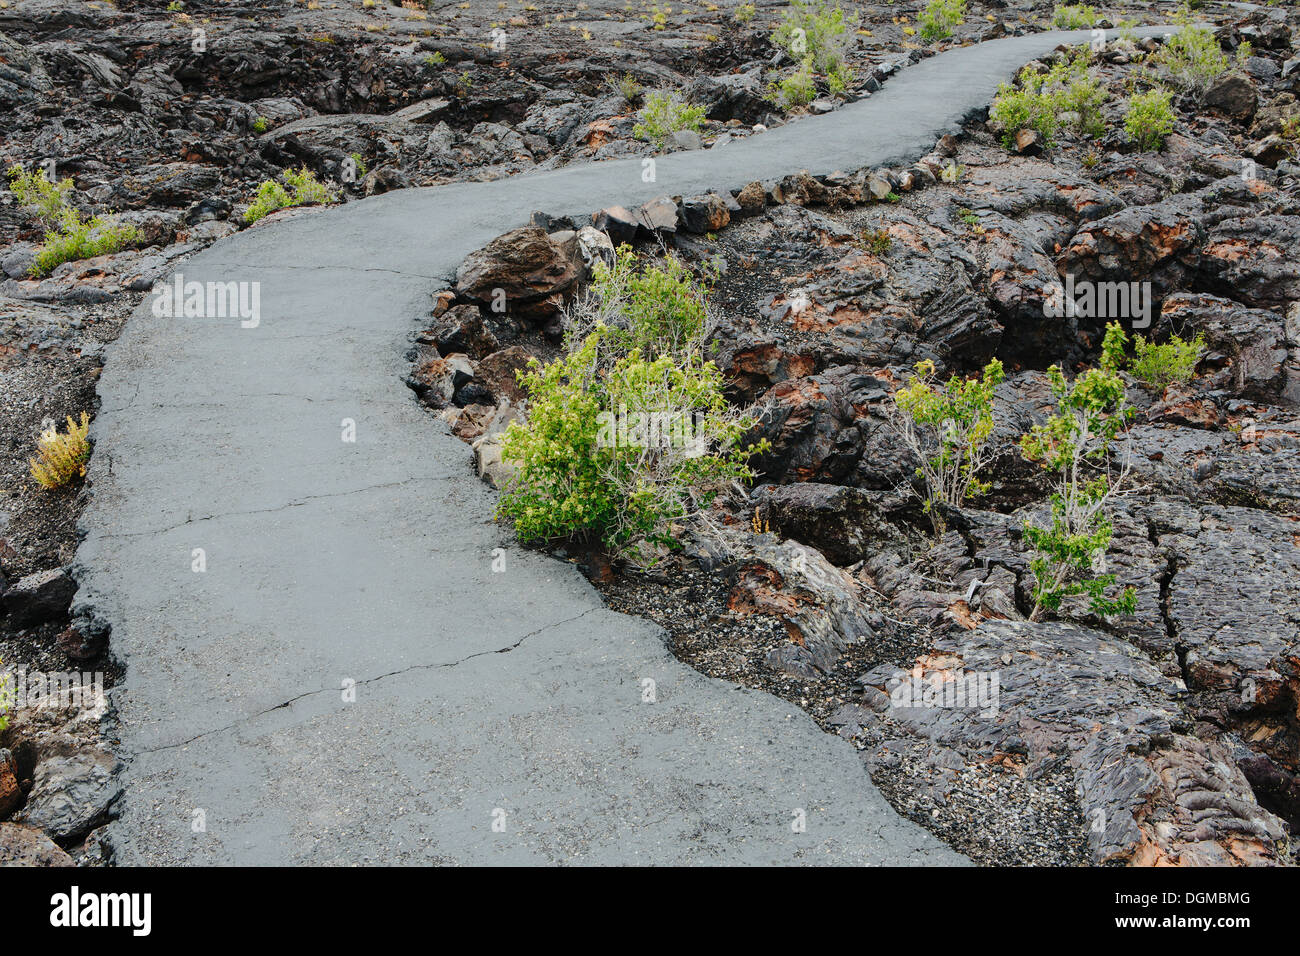 paved pathway lava fields Craters of the Moon national monument preserve Butte County Idaho Sagebrush plants growing. - Stock Image